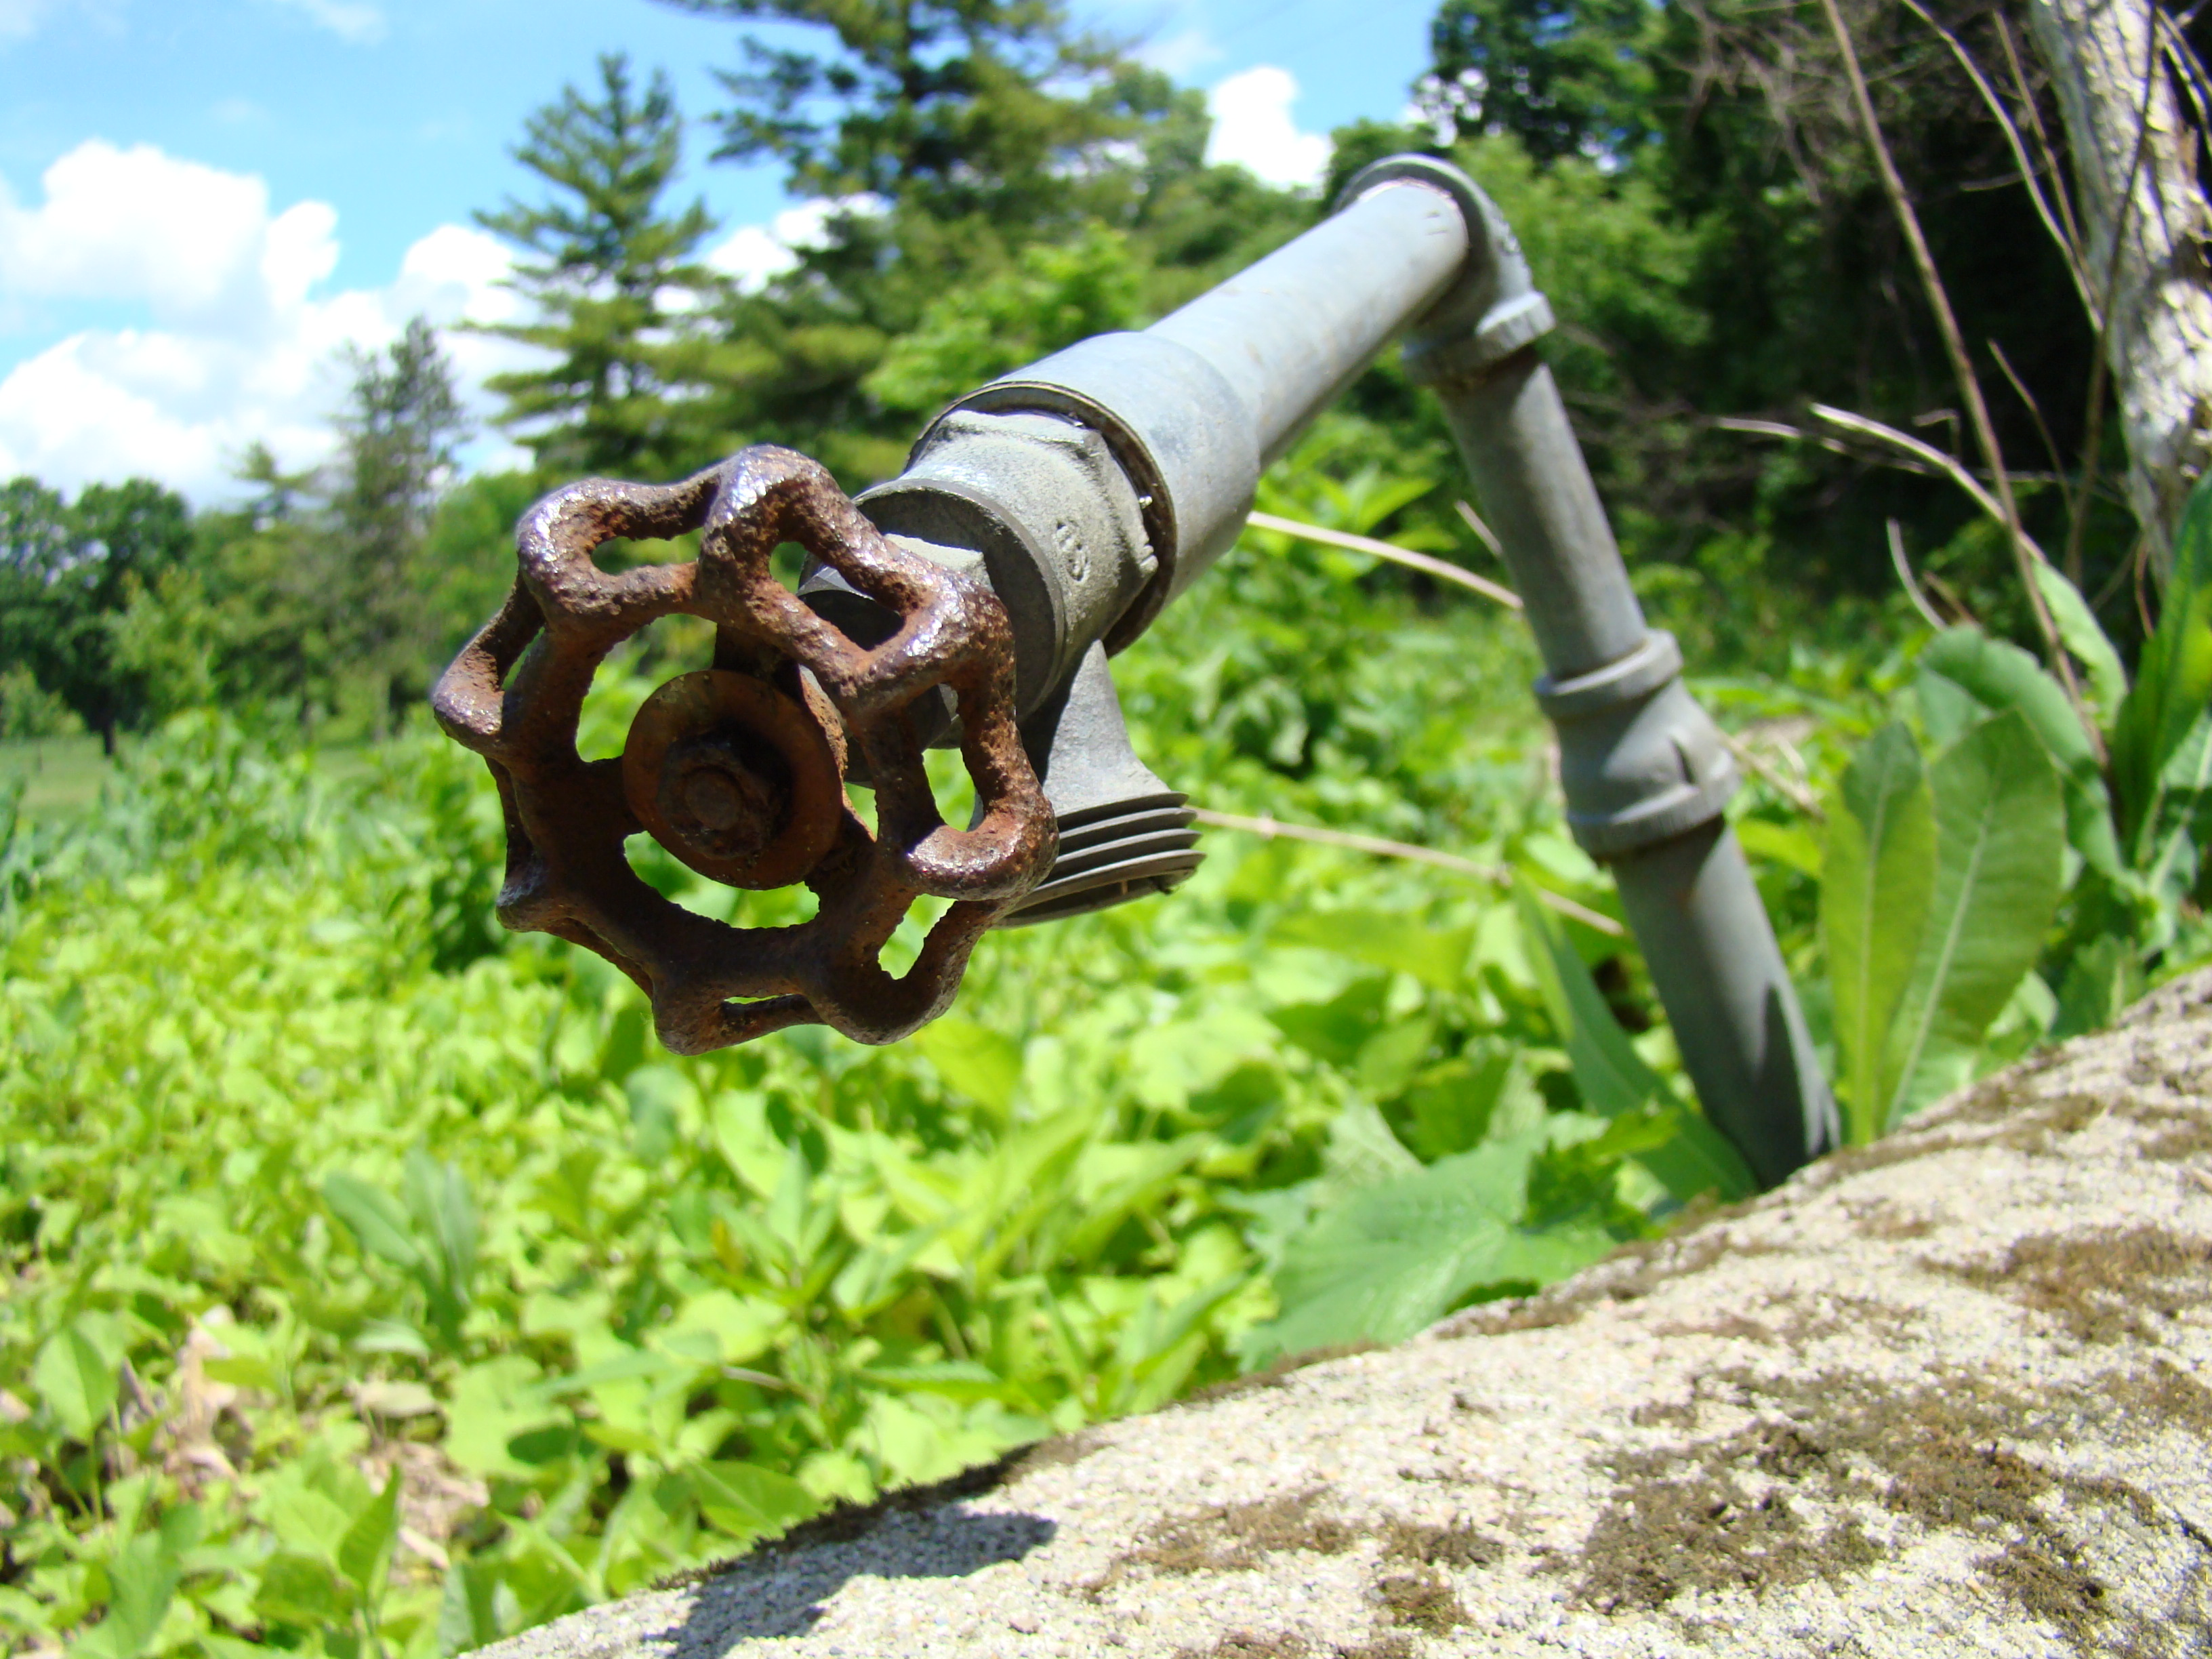 Griggs Reservoir Park, Franklin County, Outside, Pipe, Valve, HQ Photo